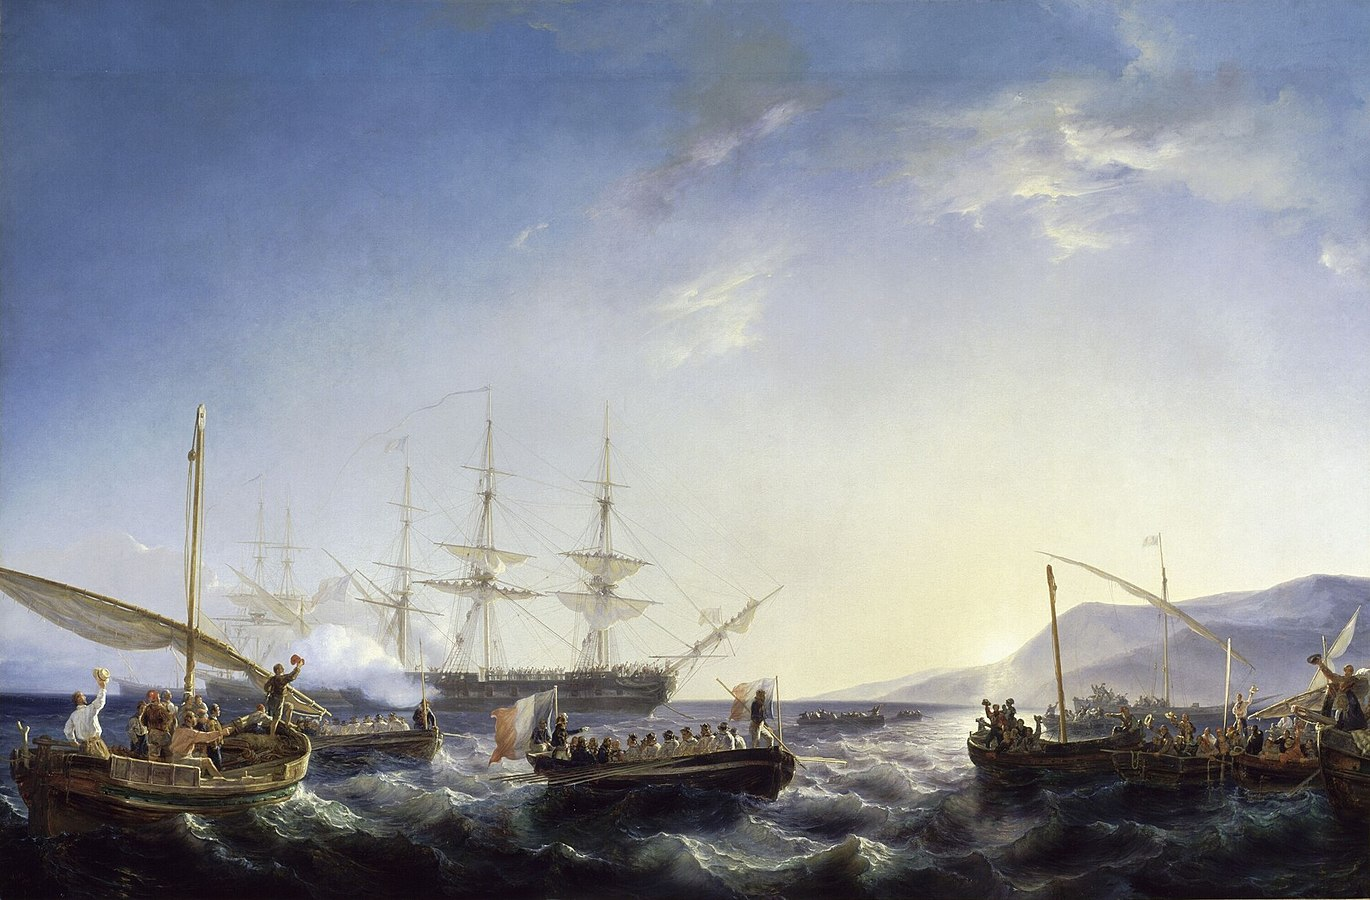 Bonaparte arriving in France back from Egypt on 9 October 1799